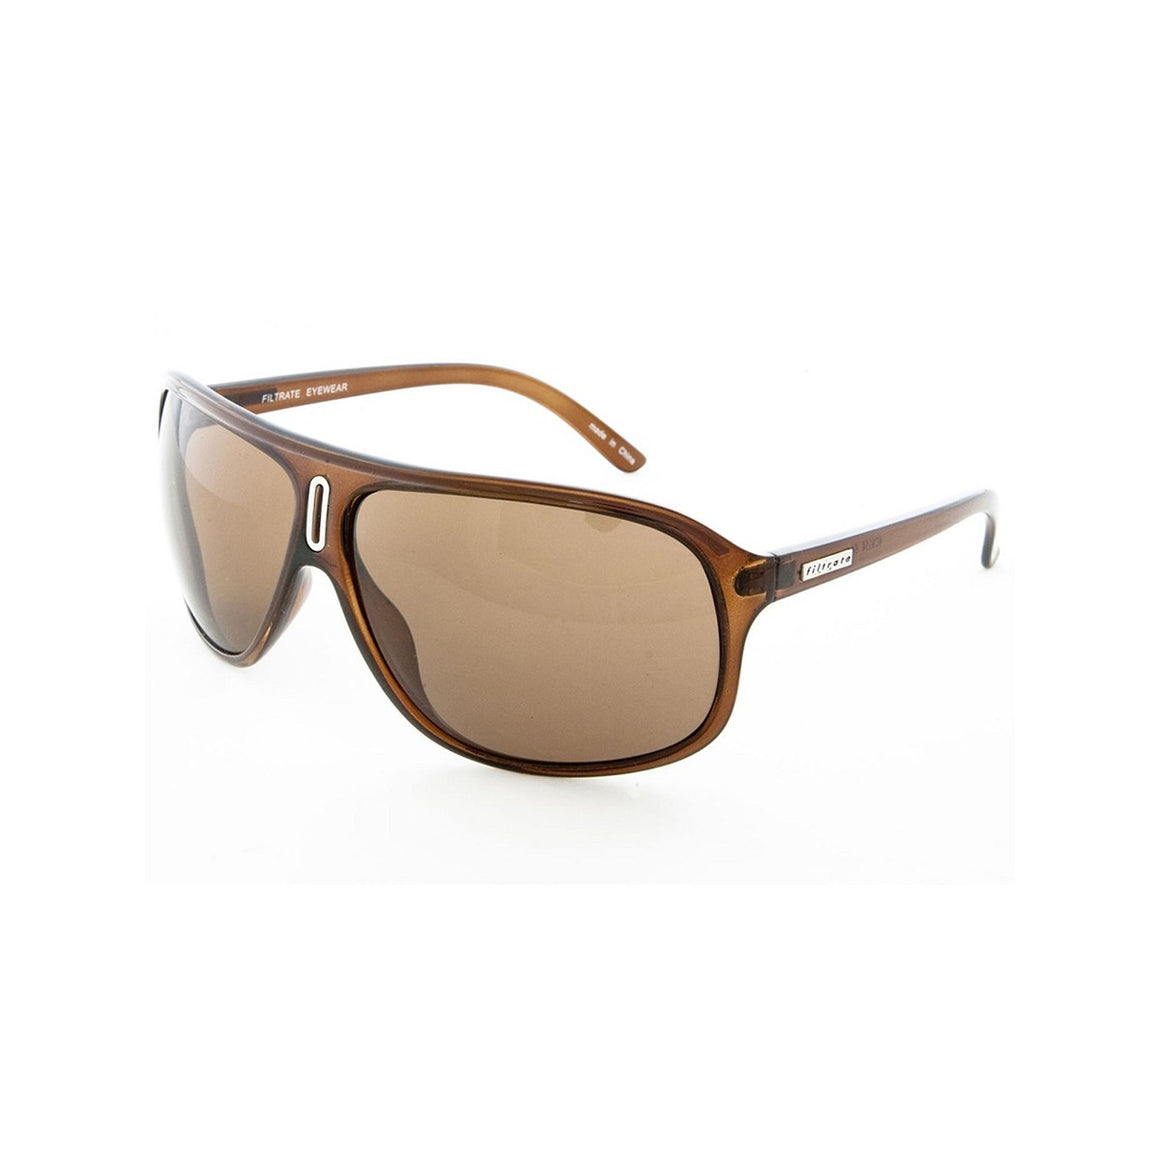 FILTRATE MONTOYA CHOCOLATE UNISEX SUNGLASSES